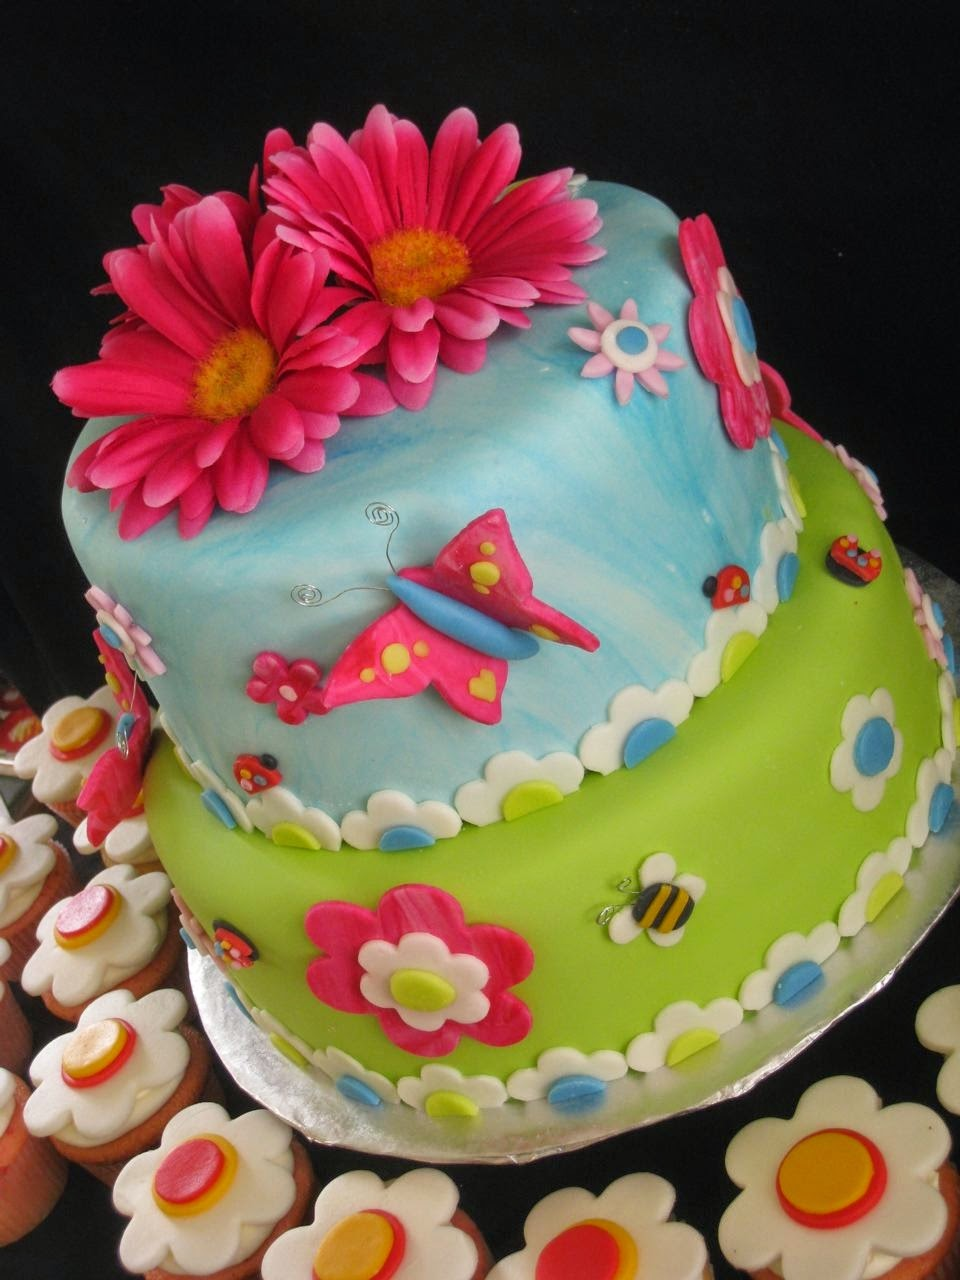 Top 77 Photos Of Cakes For Birthday Girls | Cakes Gallery